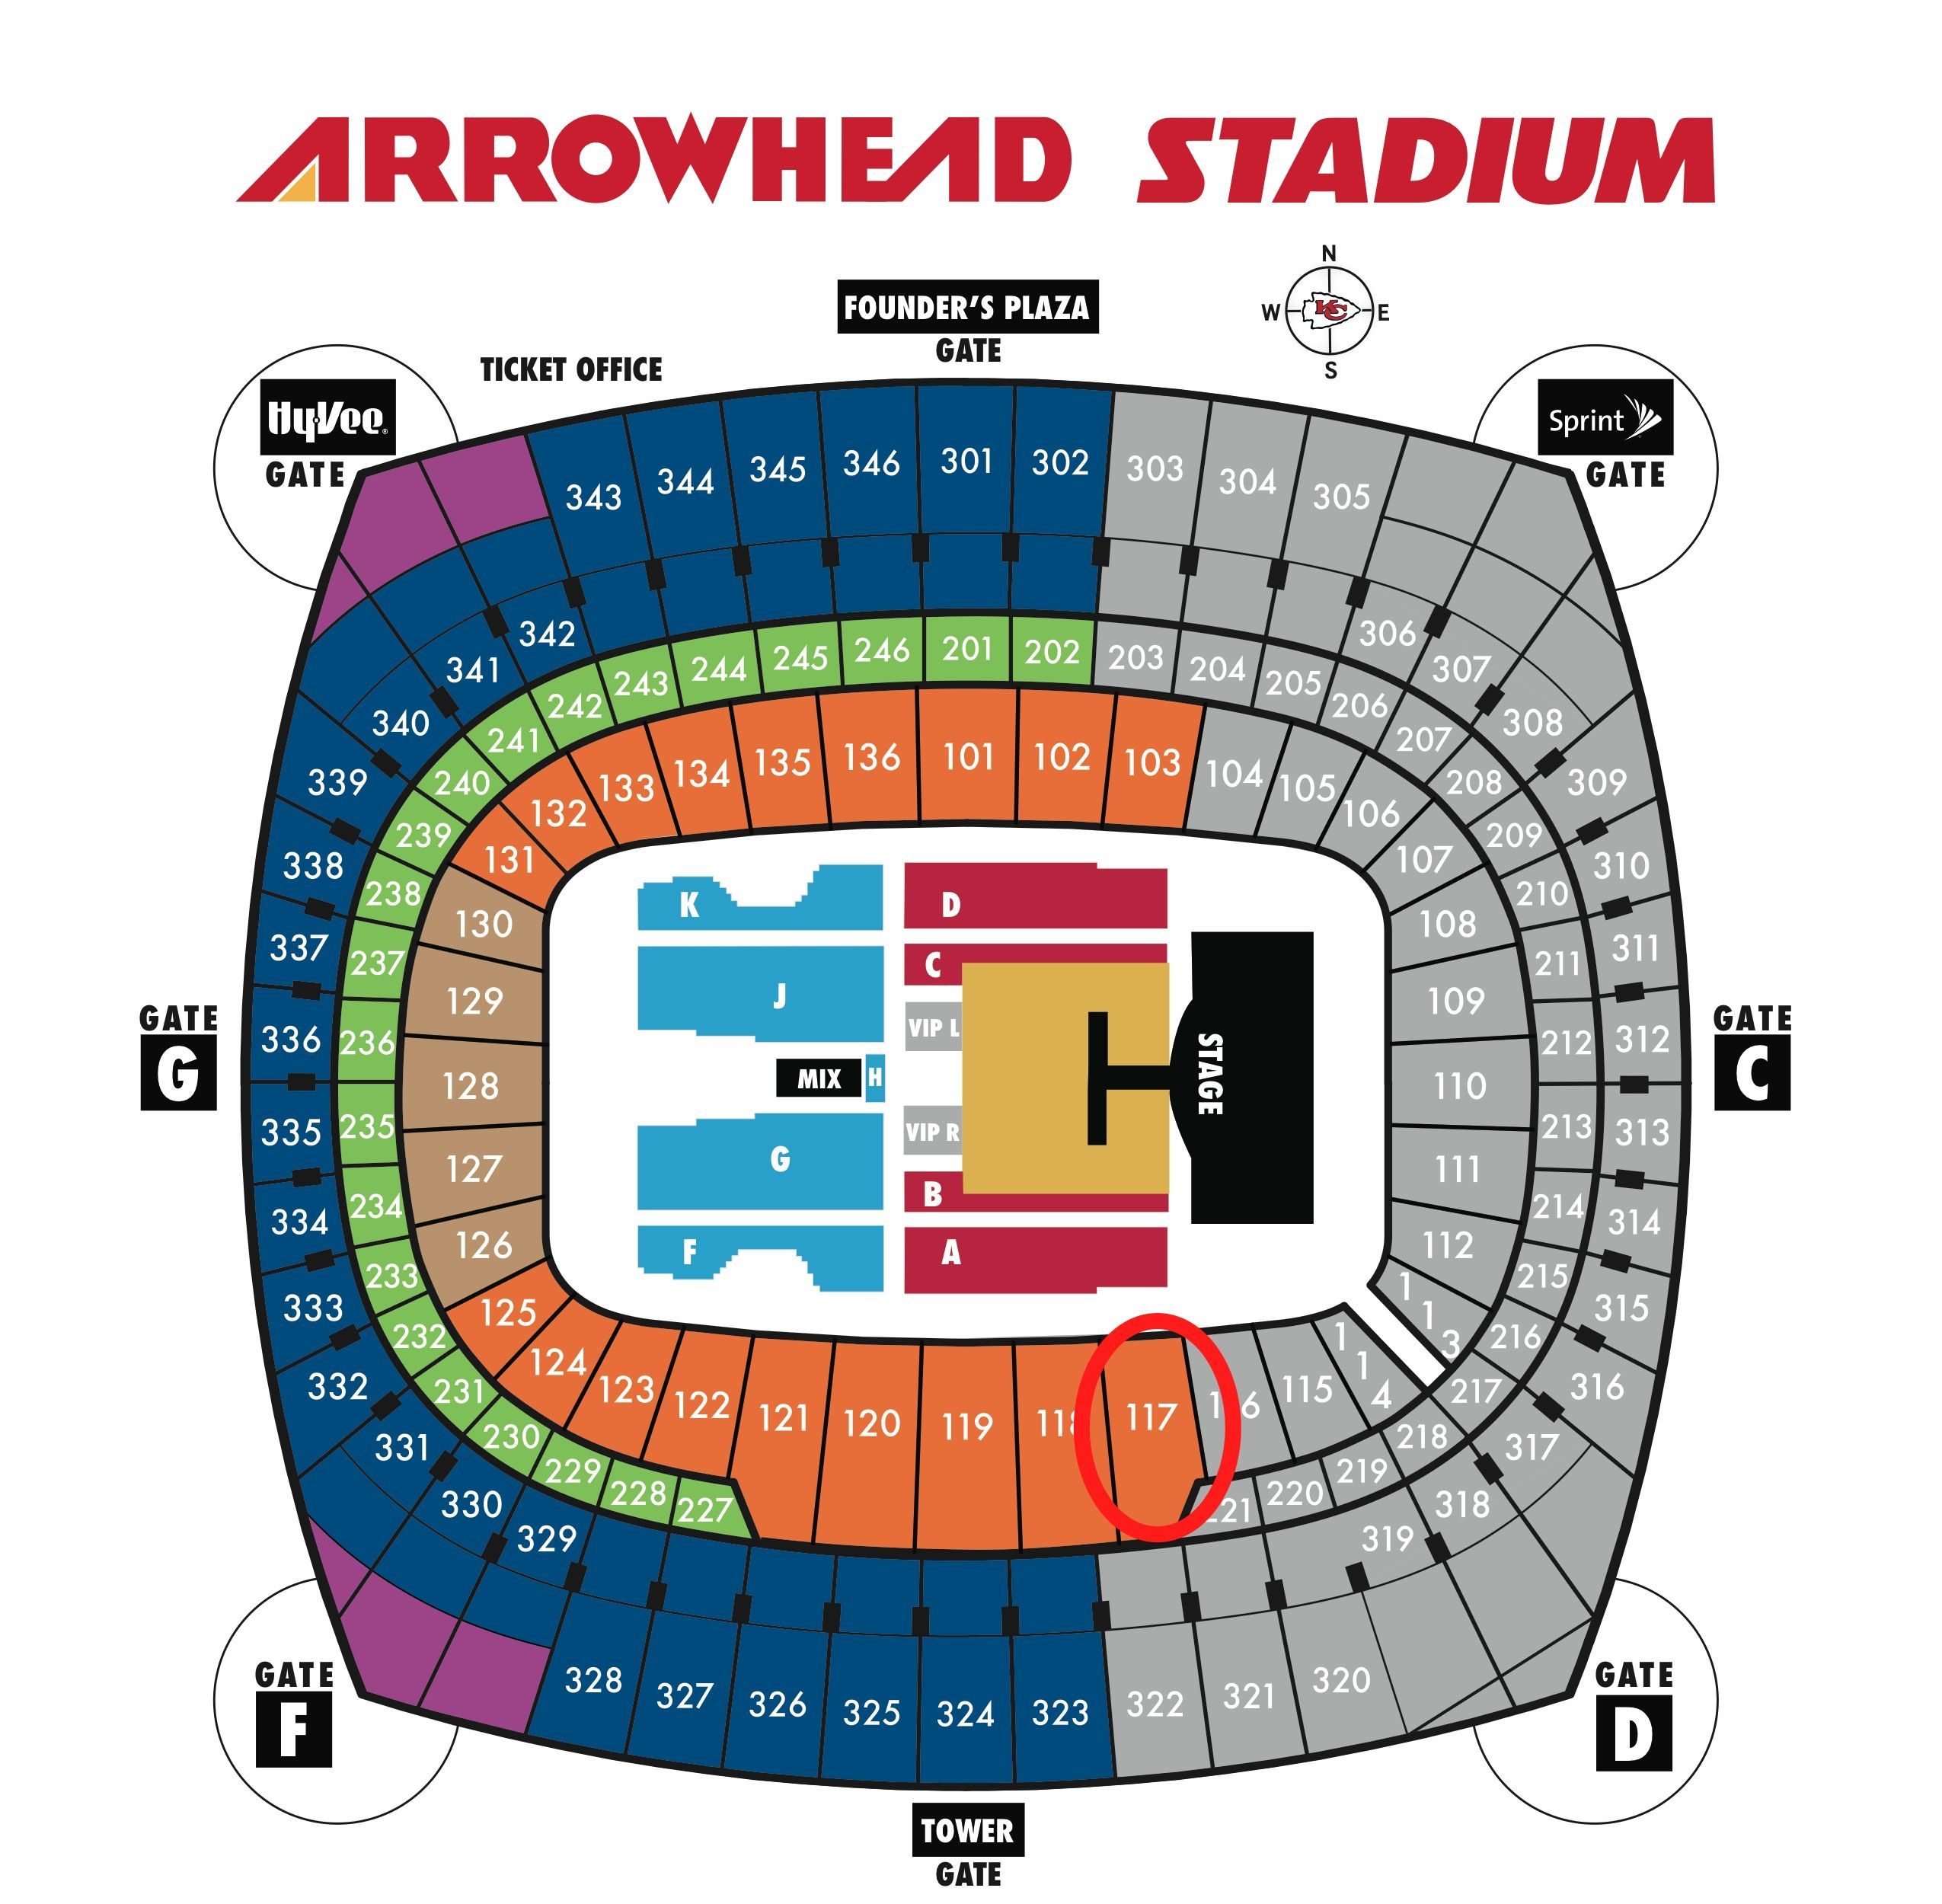 Arrowhead Stadium Seating Chart With Rows Google Search